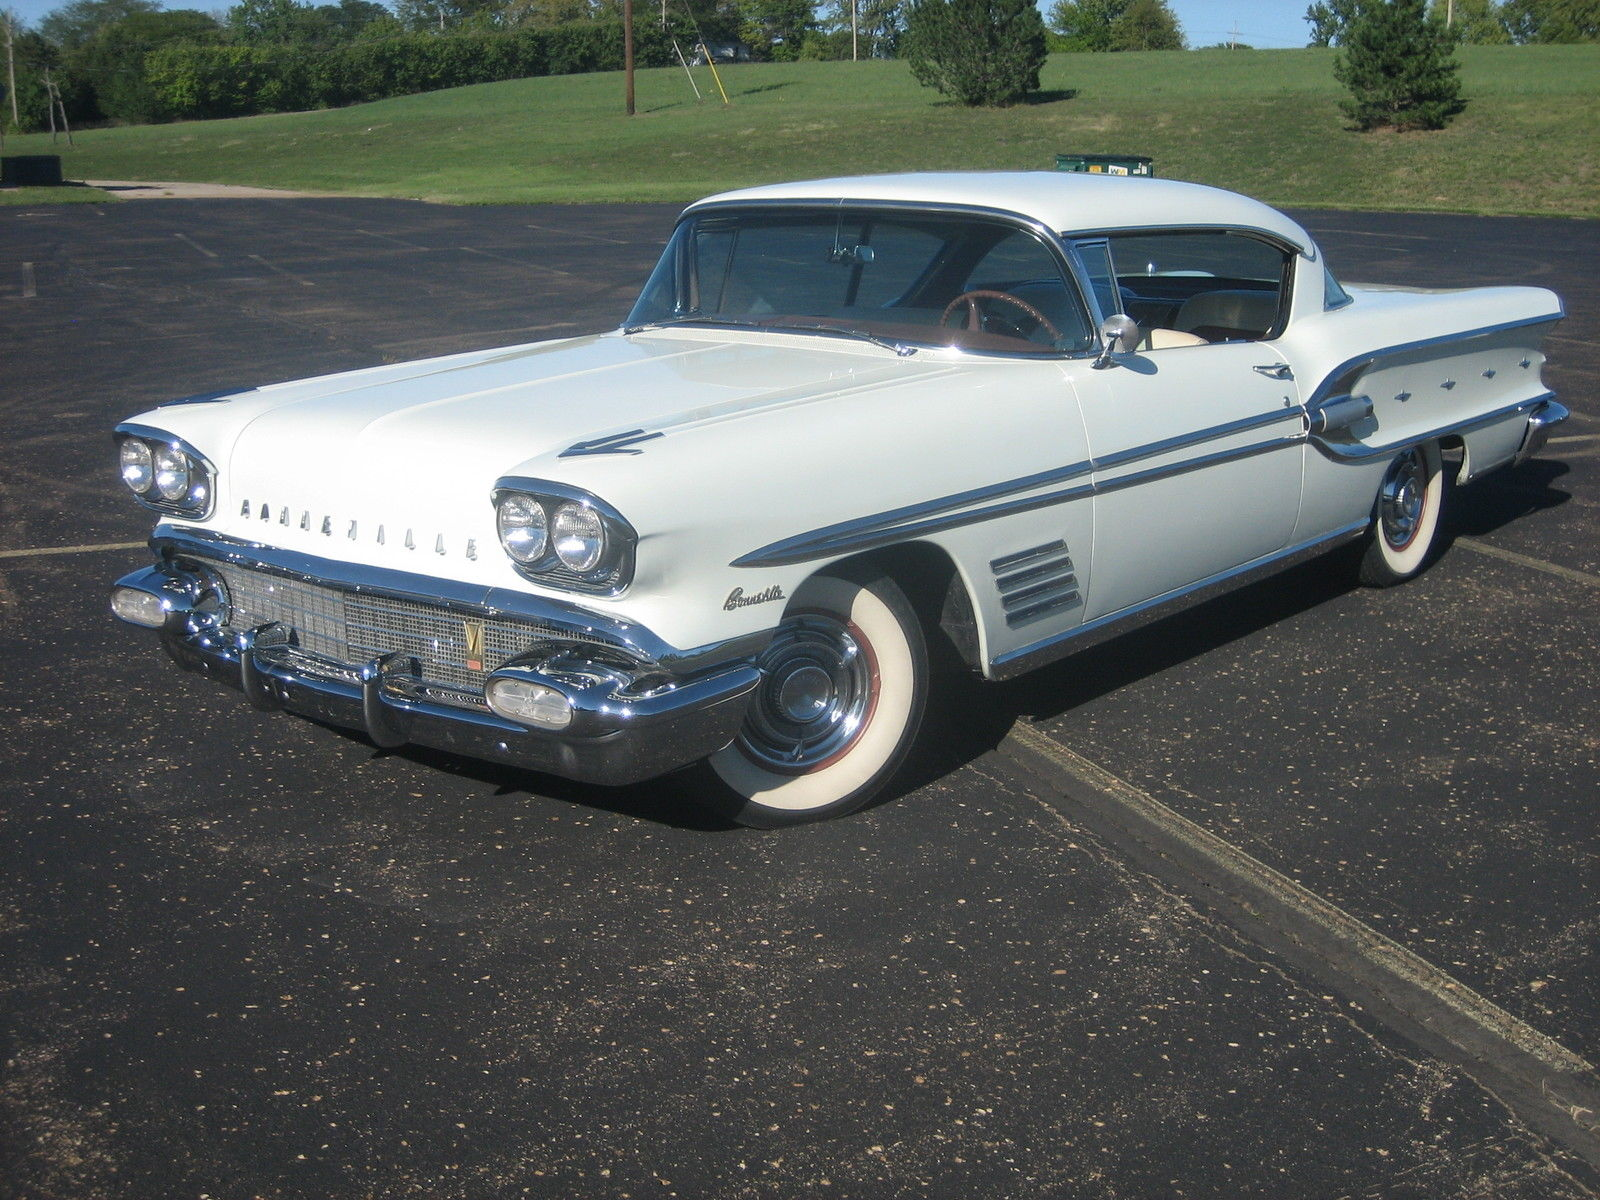 1958 pontiac bonneville 2 door hardtop coupe air suspended